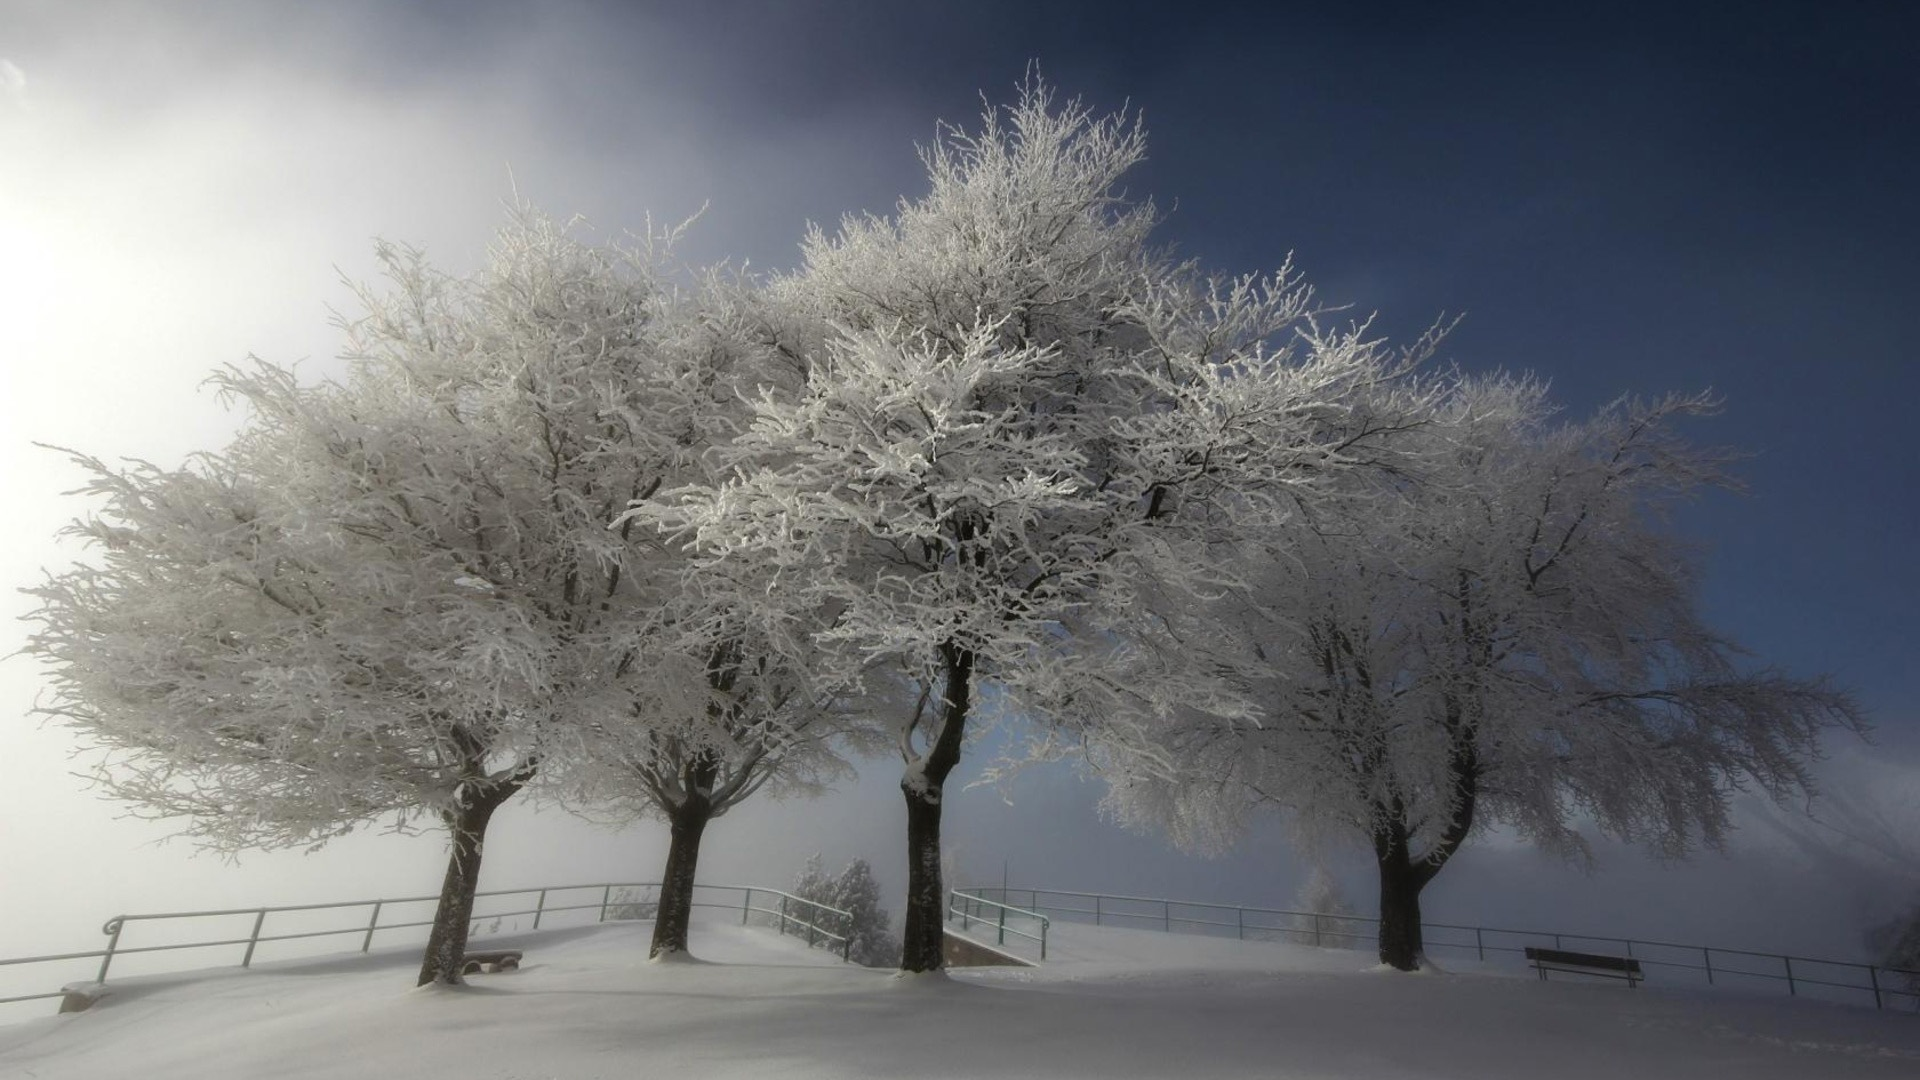 snow scenery full hd - photo #49